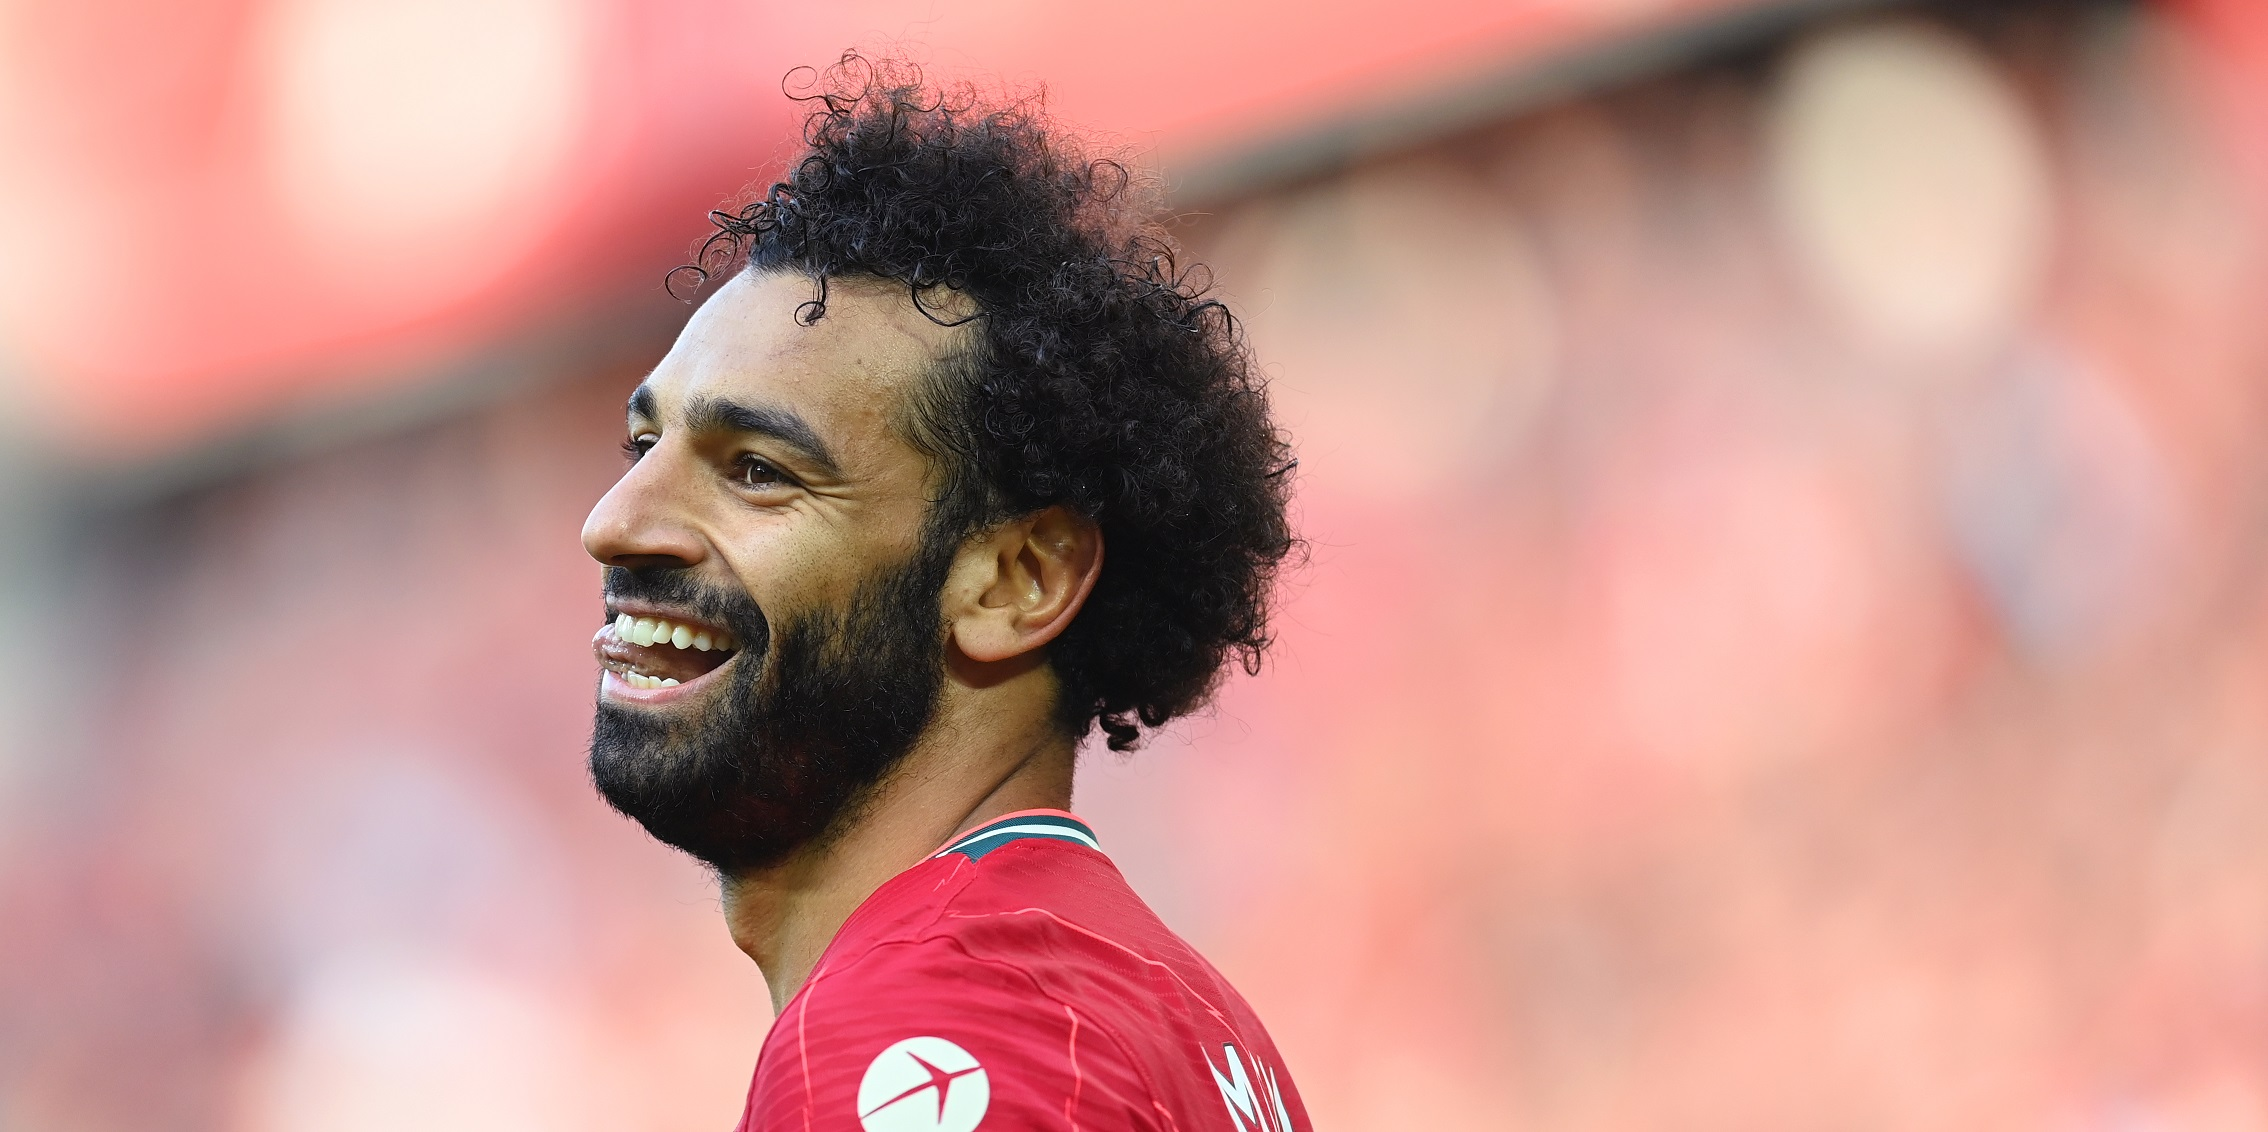 'Liverpool will get this contract done' – Reliable journalist predicts positive outcome for Mo Salah talks